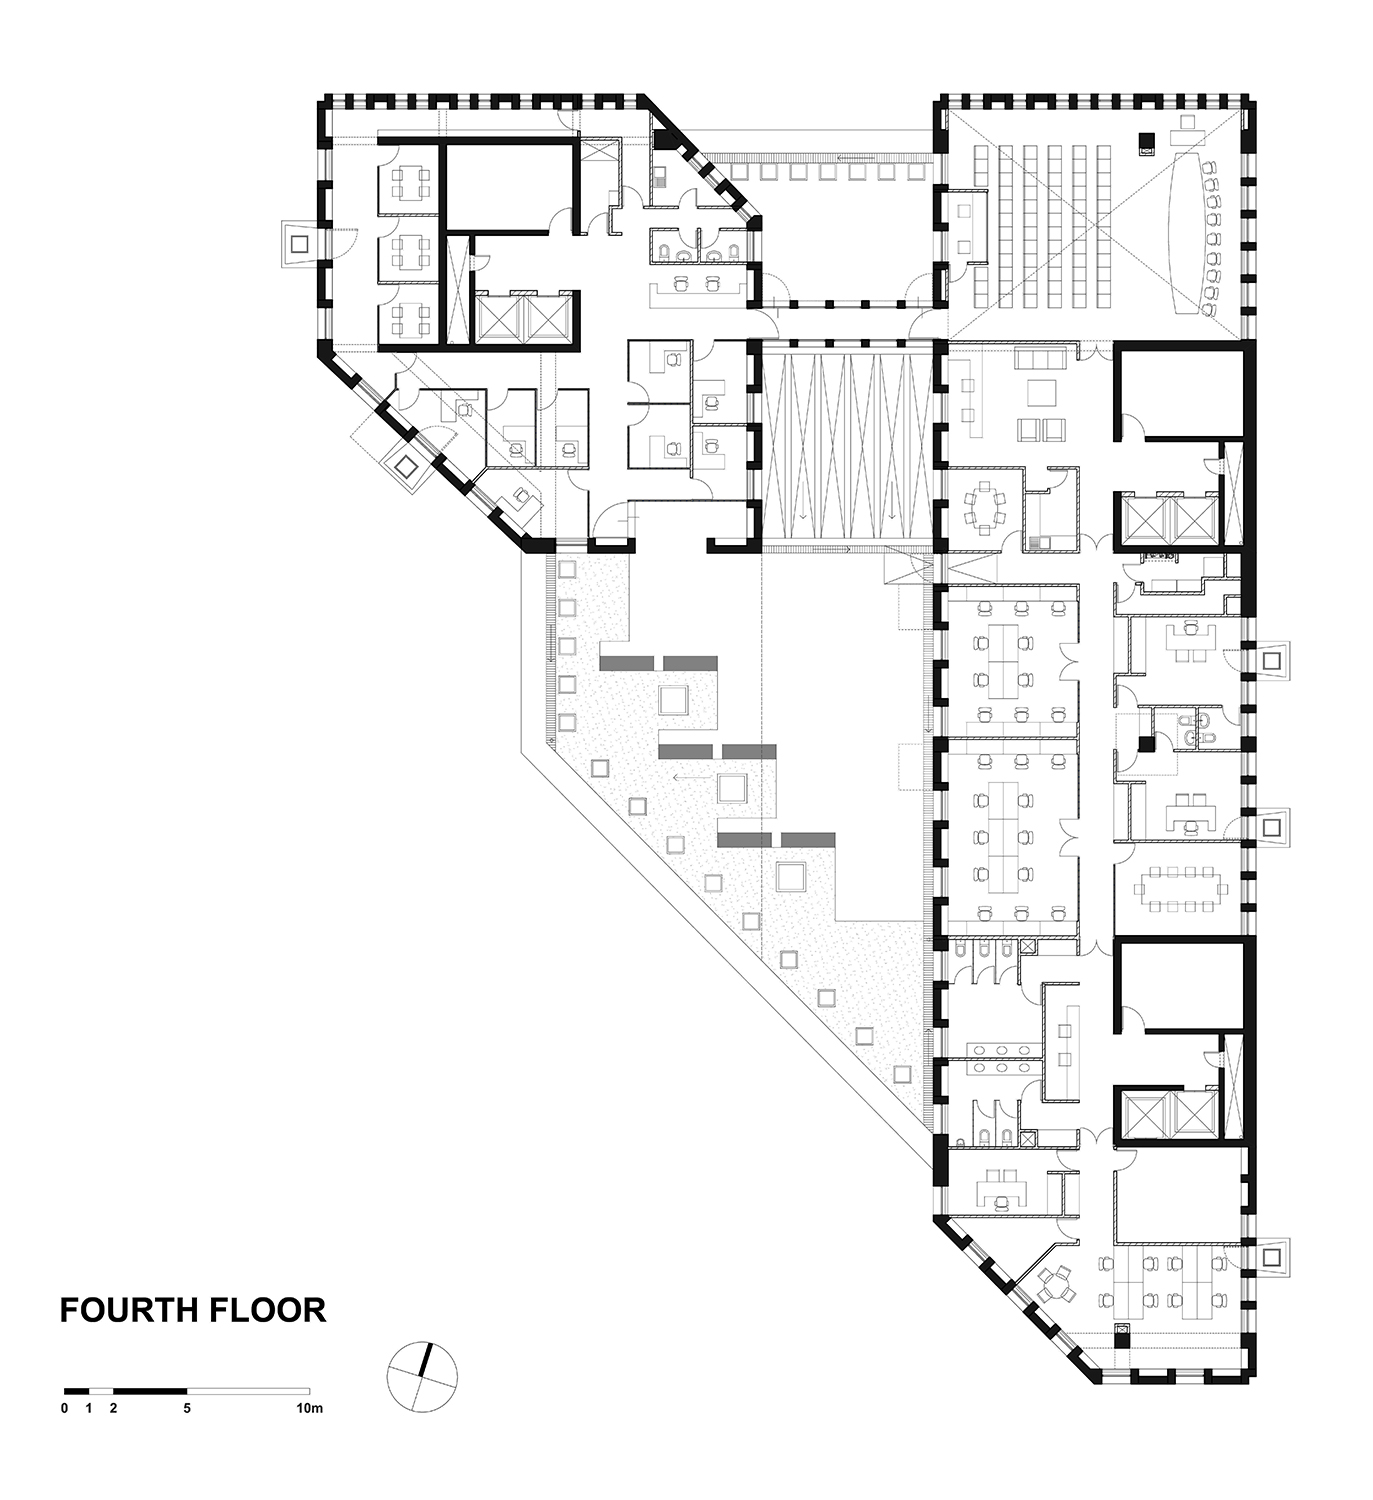 FOURTH FLOOR PLAN GONZALO MARDONES ARQUITECTOS}